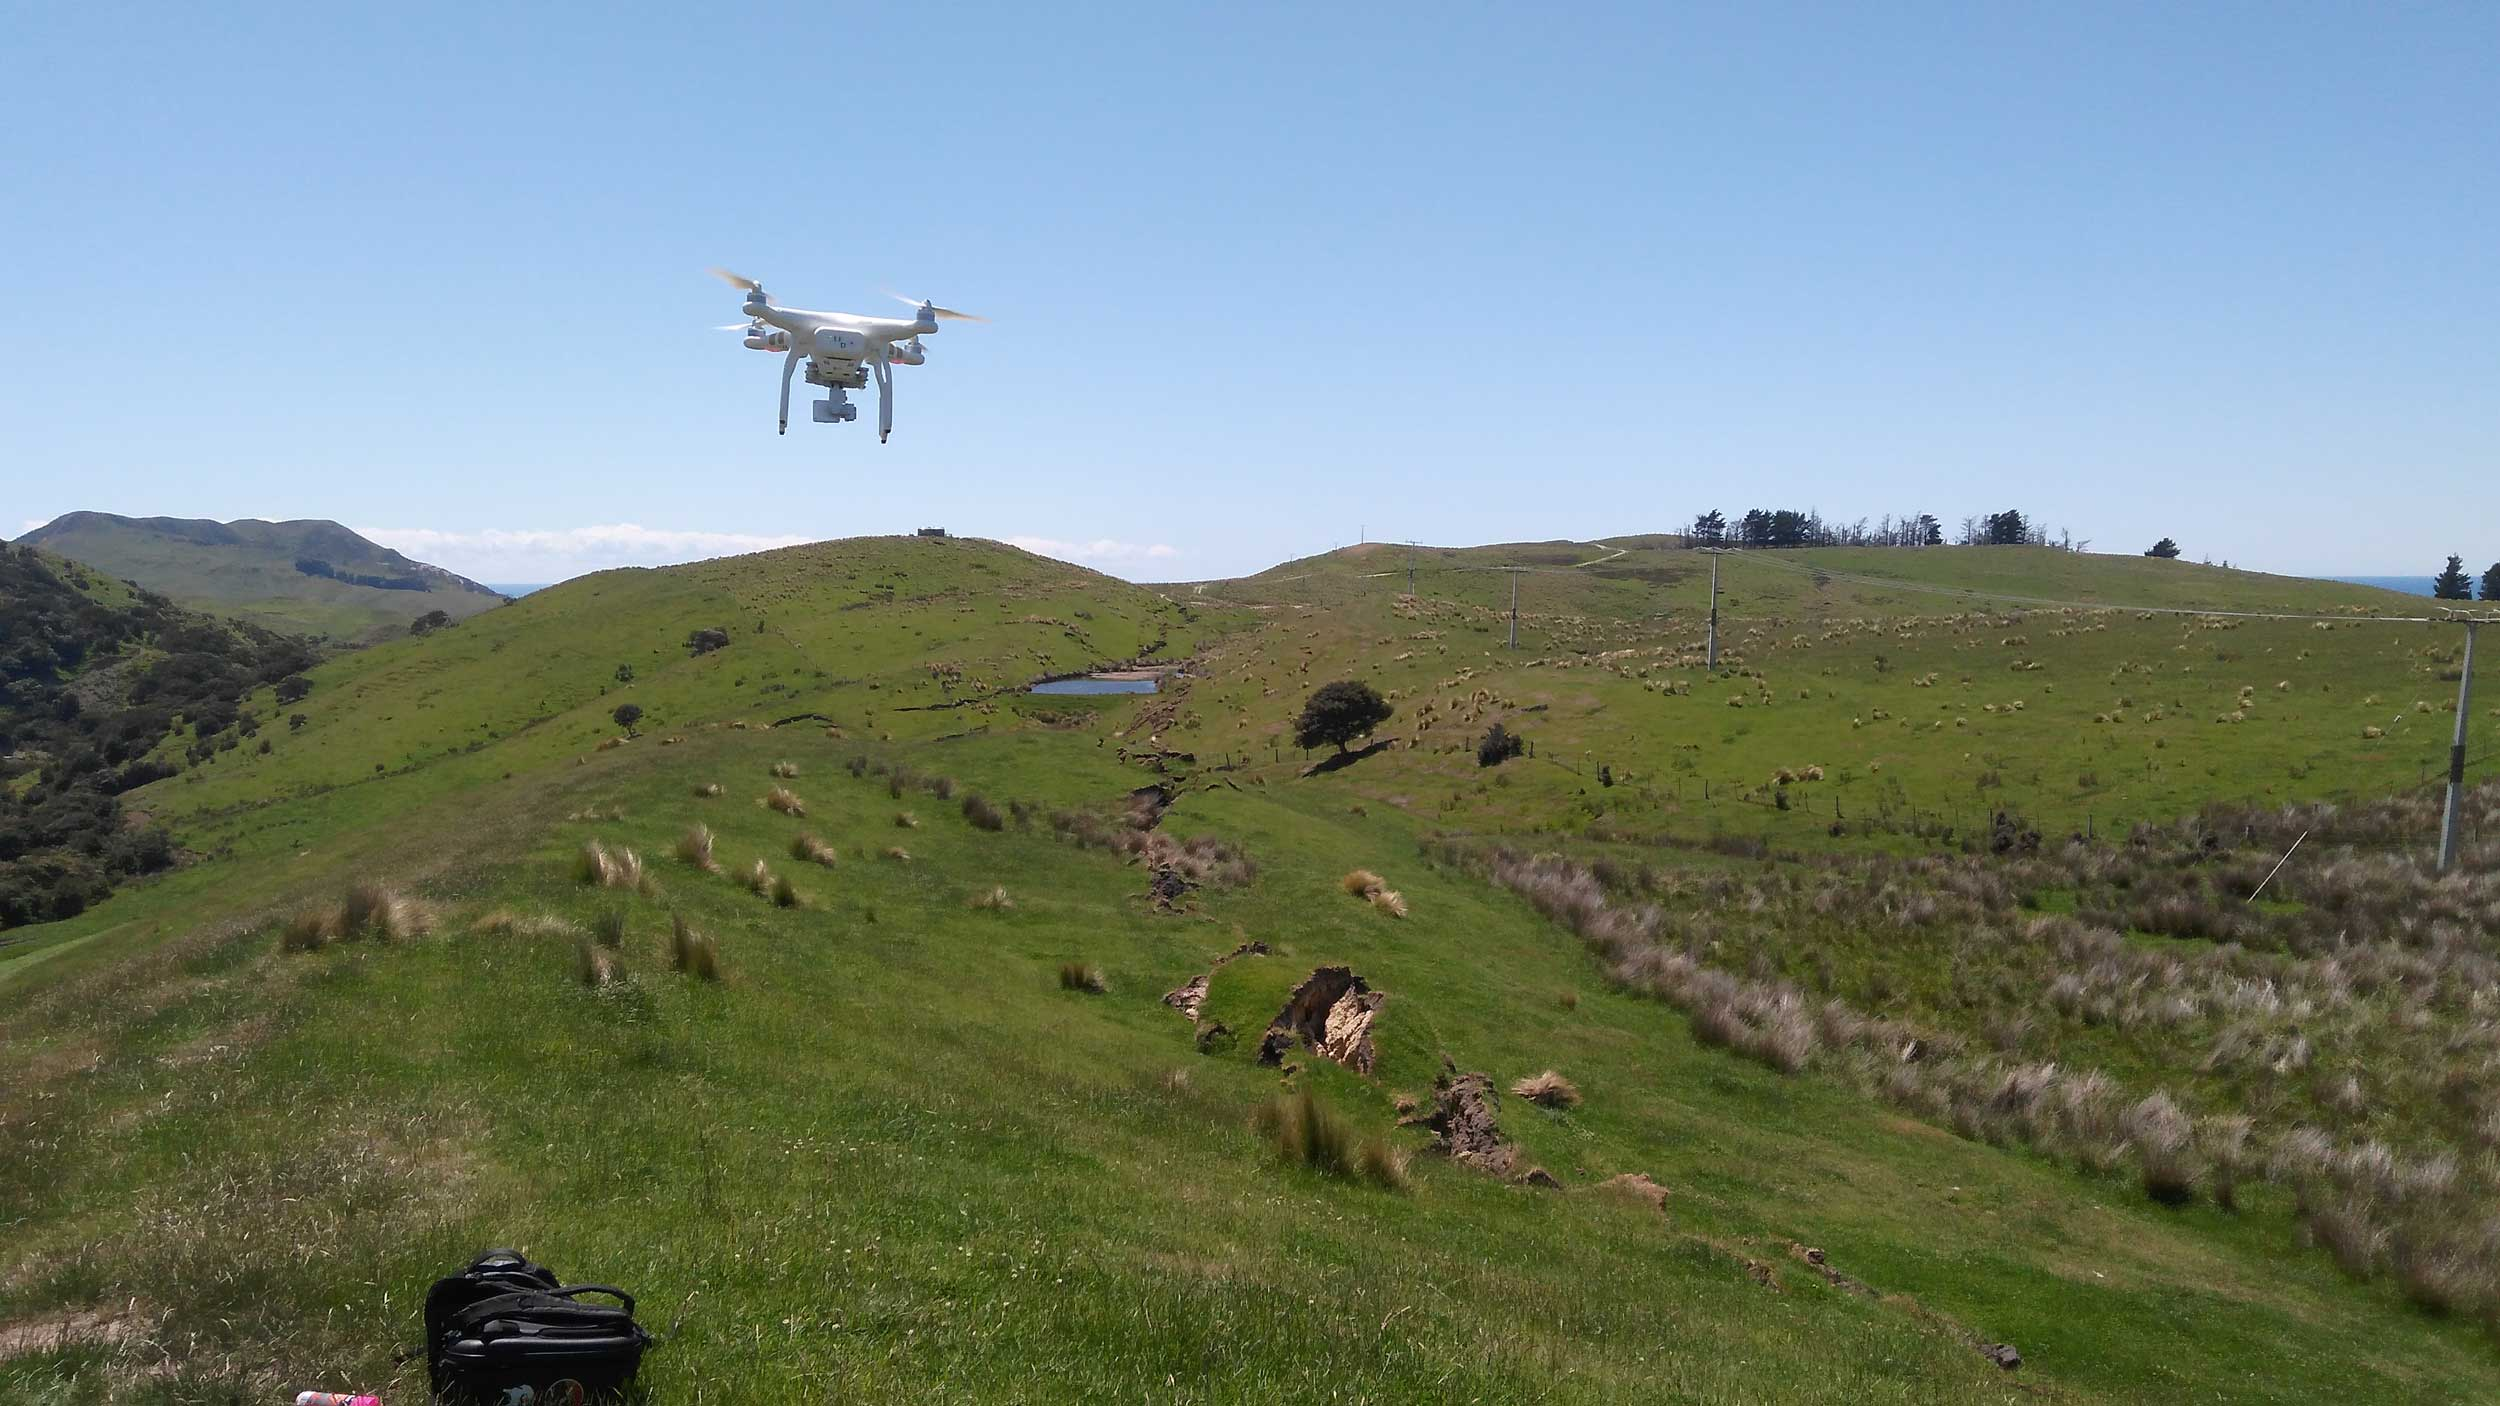 A University of Michigan drone inspecting a fault rupture site in New Zealand. Image credit: John Manousakis